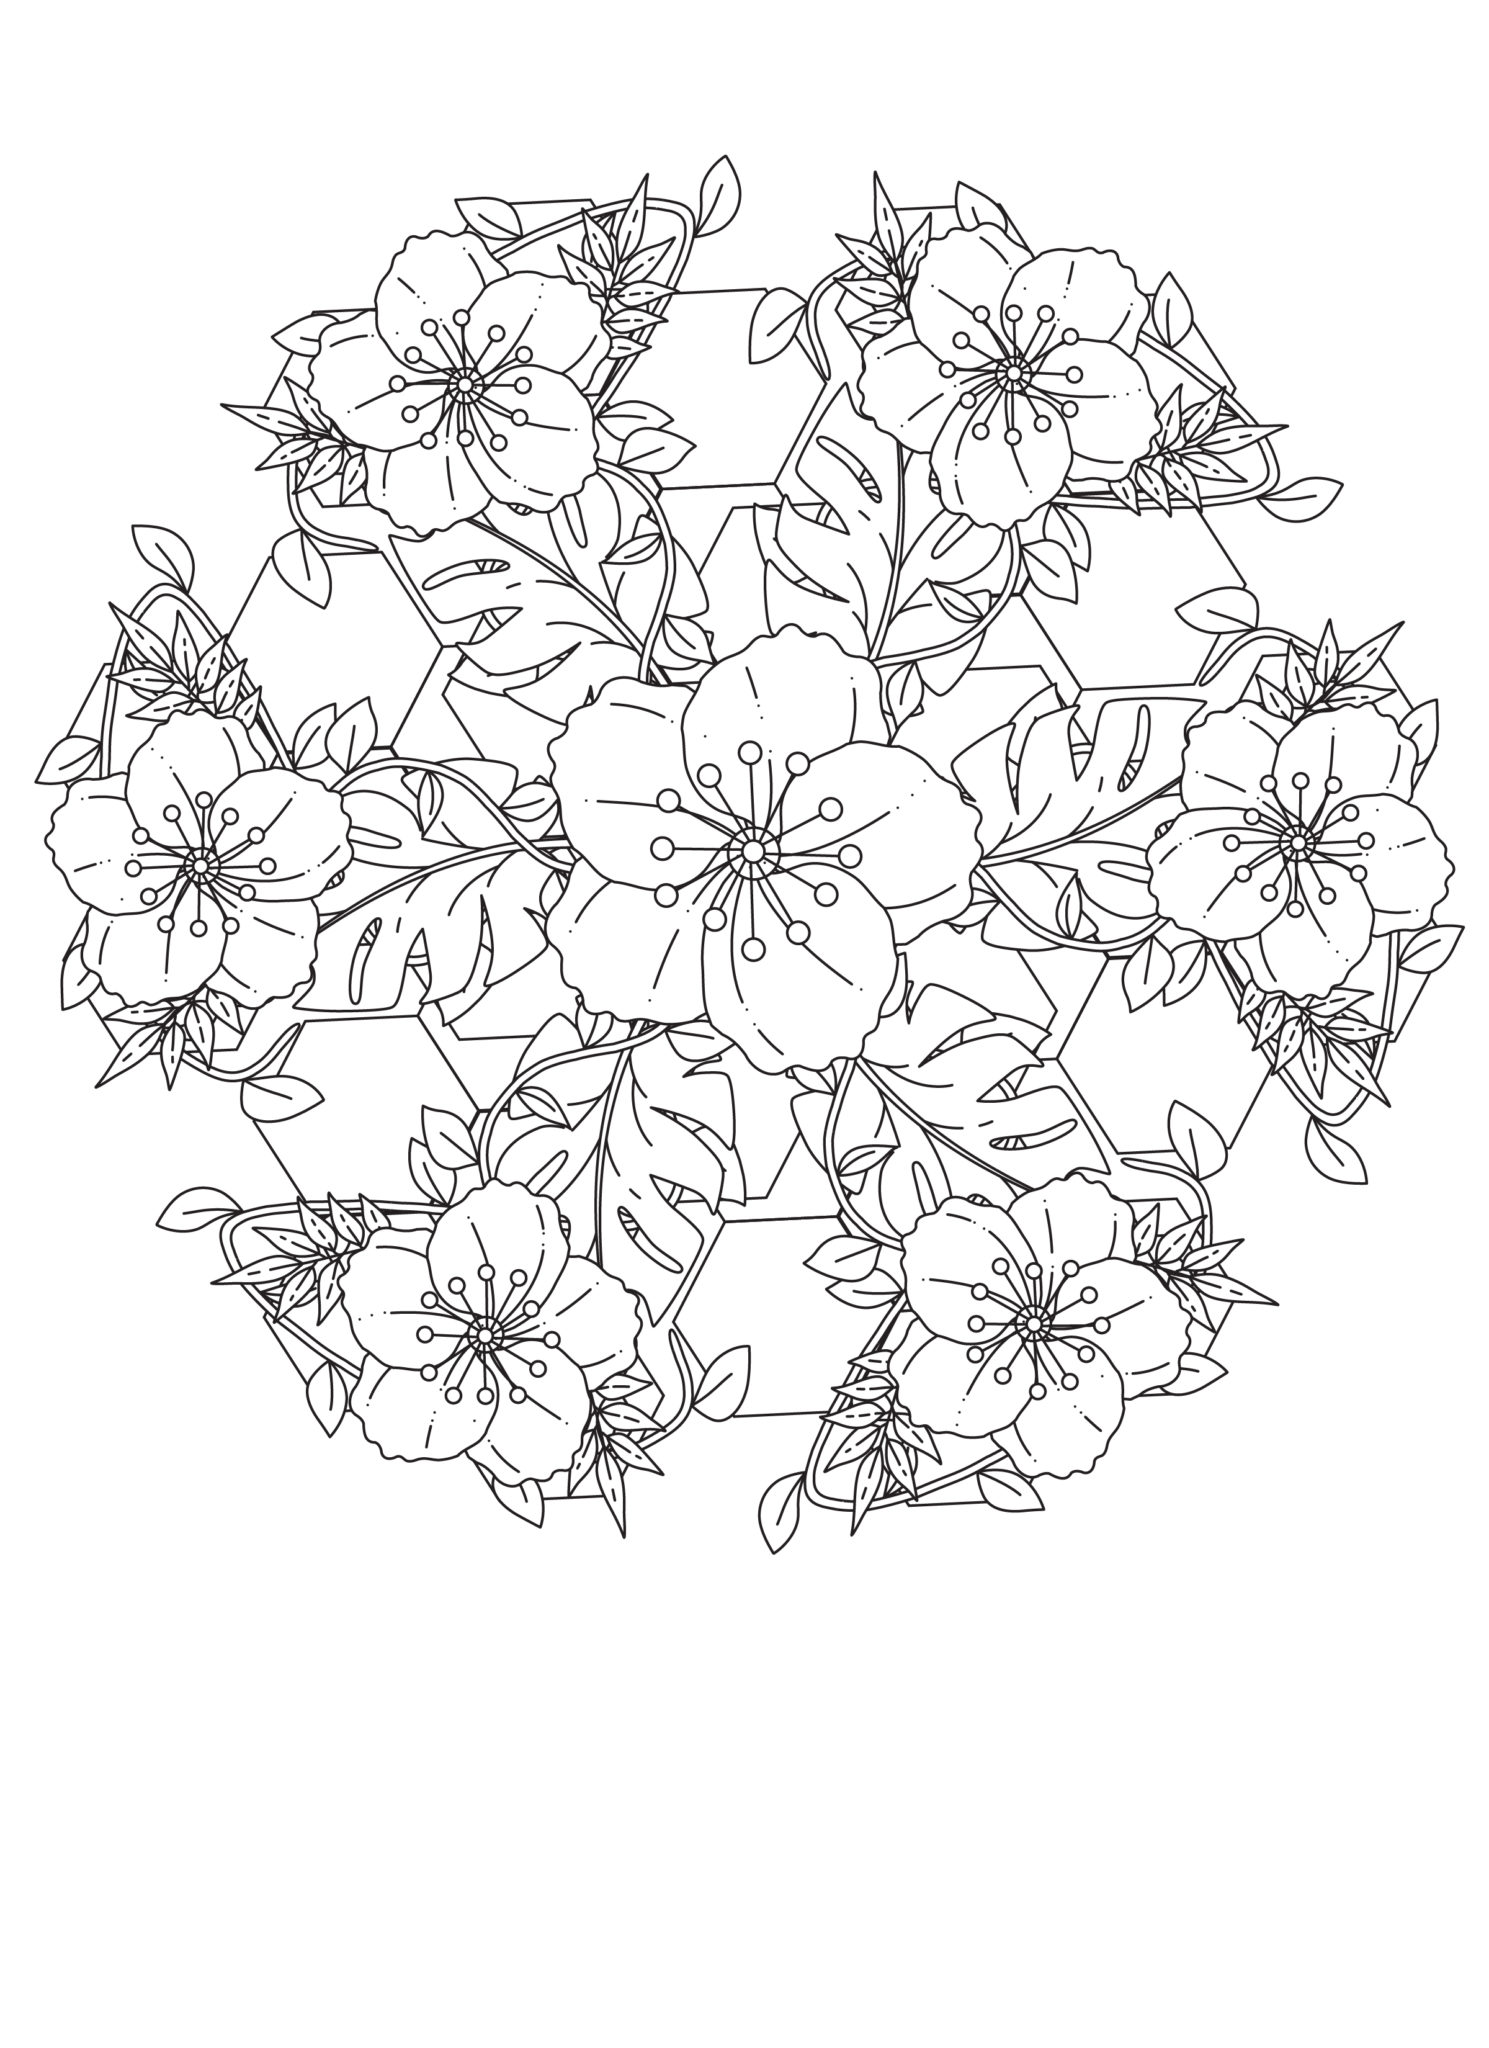 Flowers And Vines Mandala Free Coloring Page